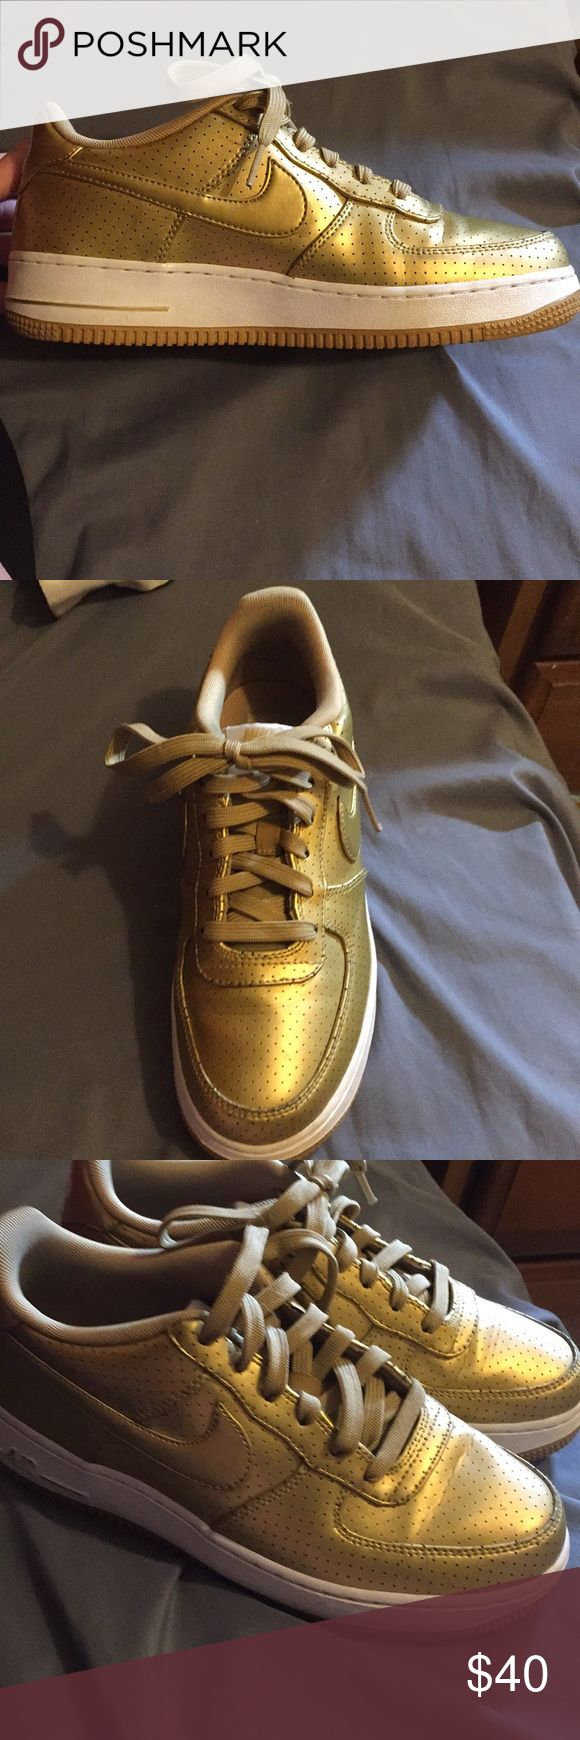 Shoes Gold 1992 Dream Team Air Force 1 Nike Shoes Sneakers